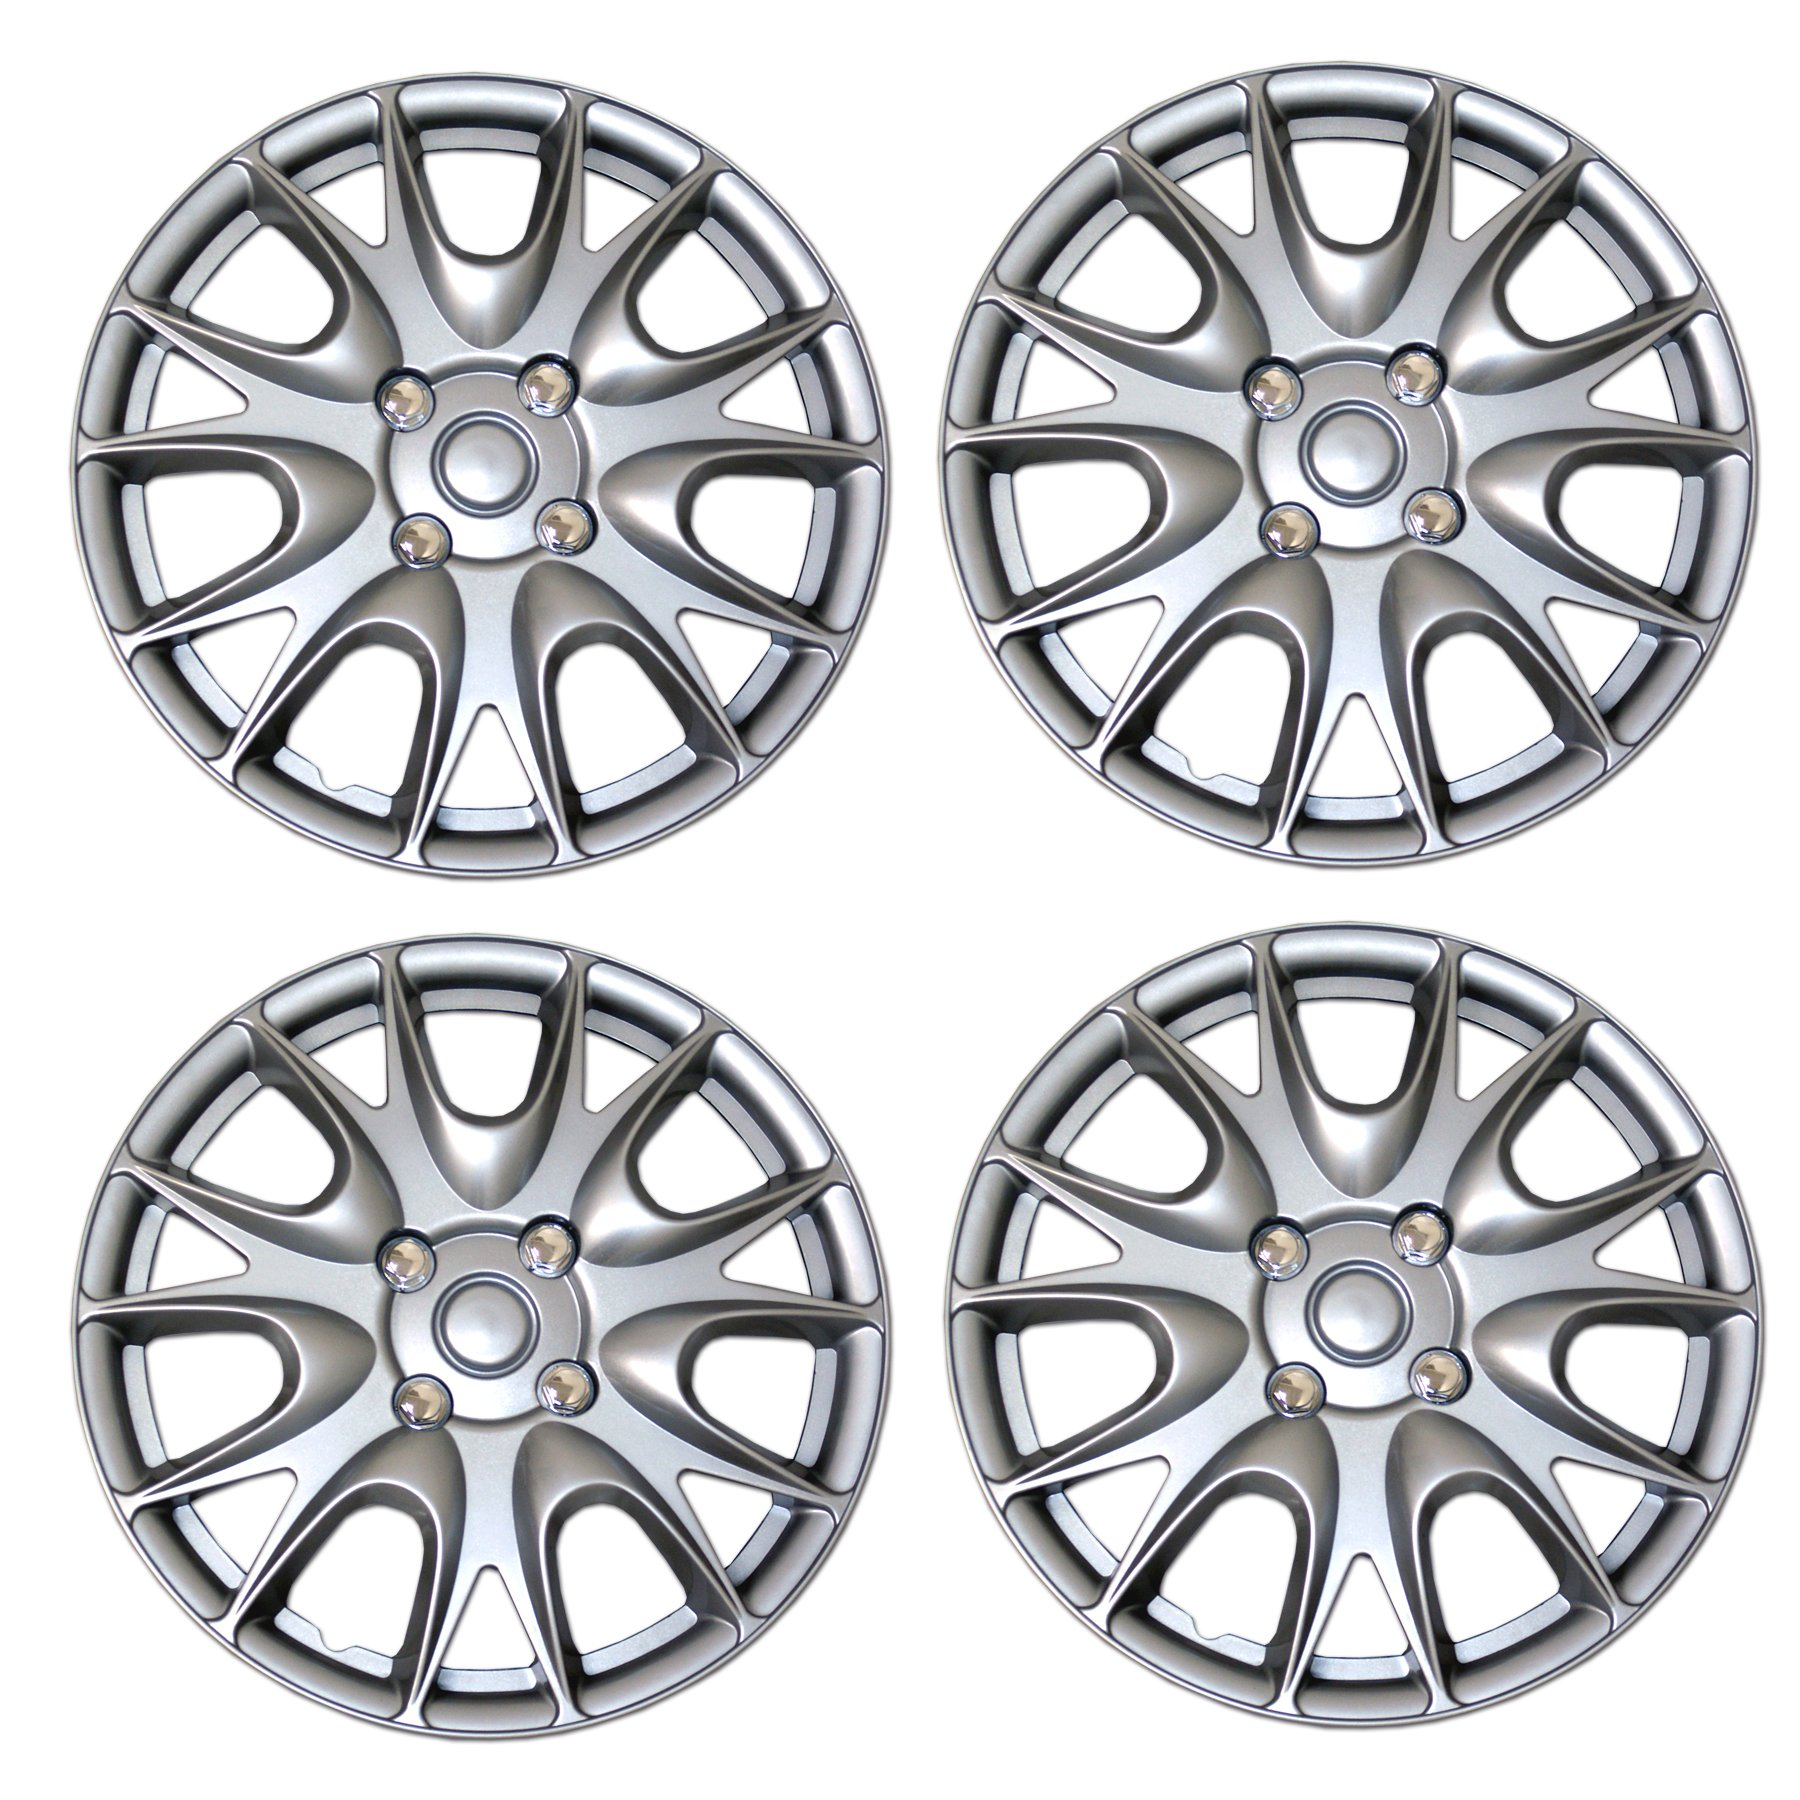 TuningPros WSC3-533S15 4pcs Set Snap-On Type (Pop-On) 15-Inches Metallic Silver Hubcaps Wheel Cover